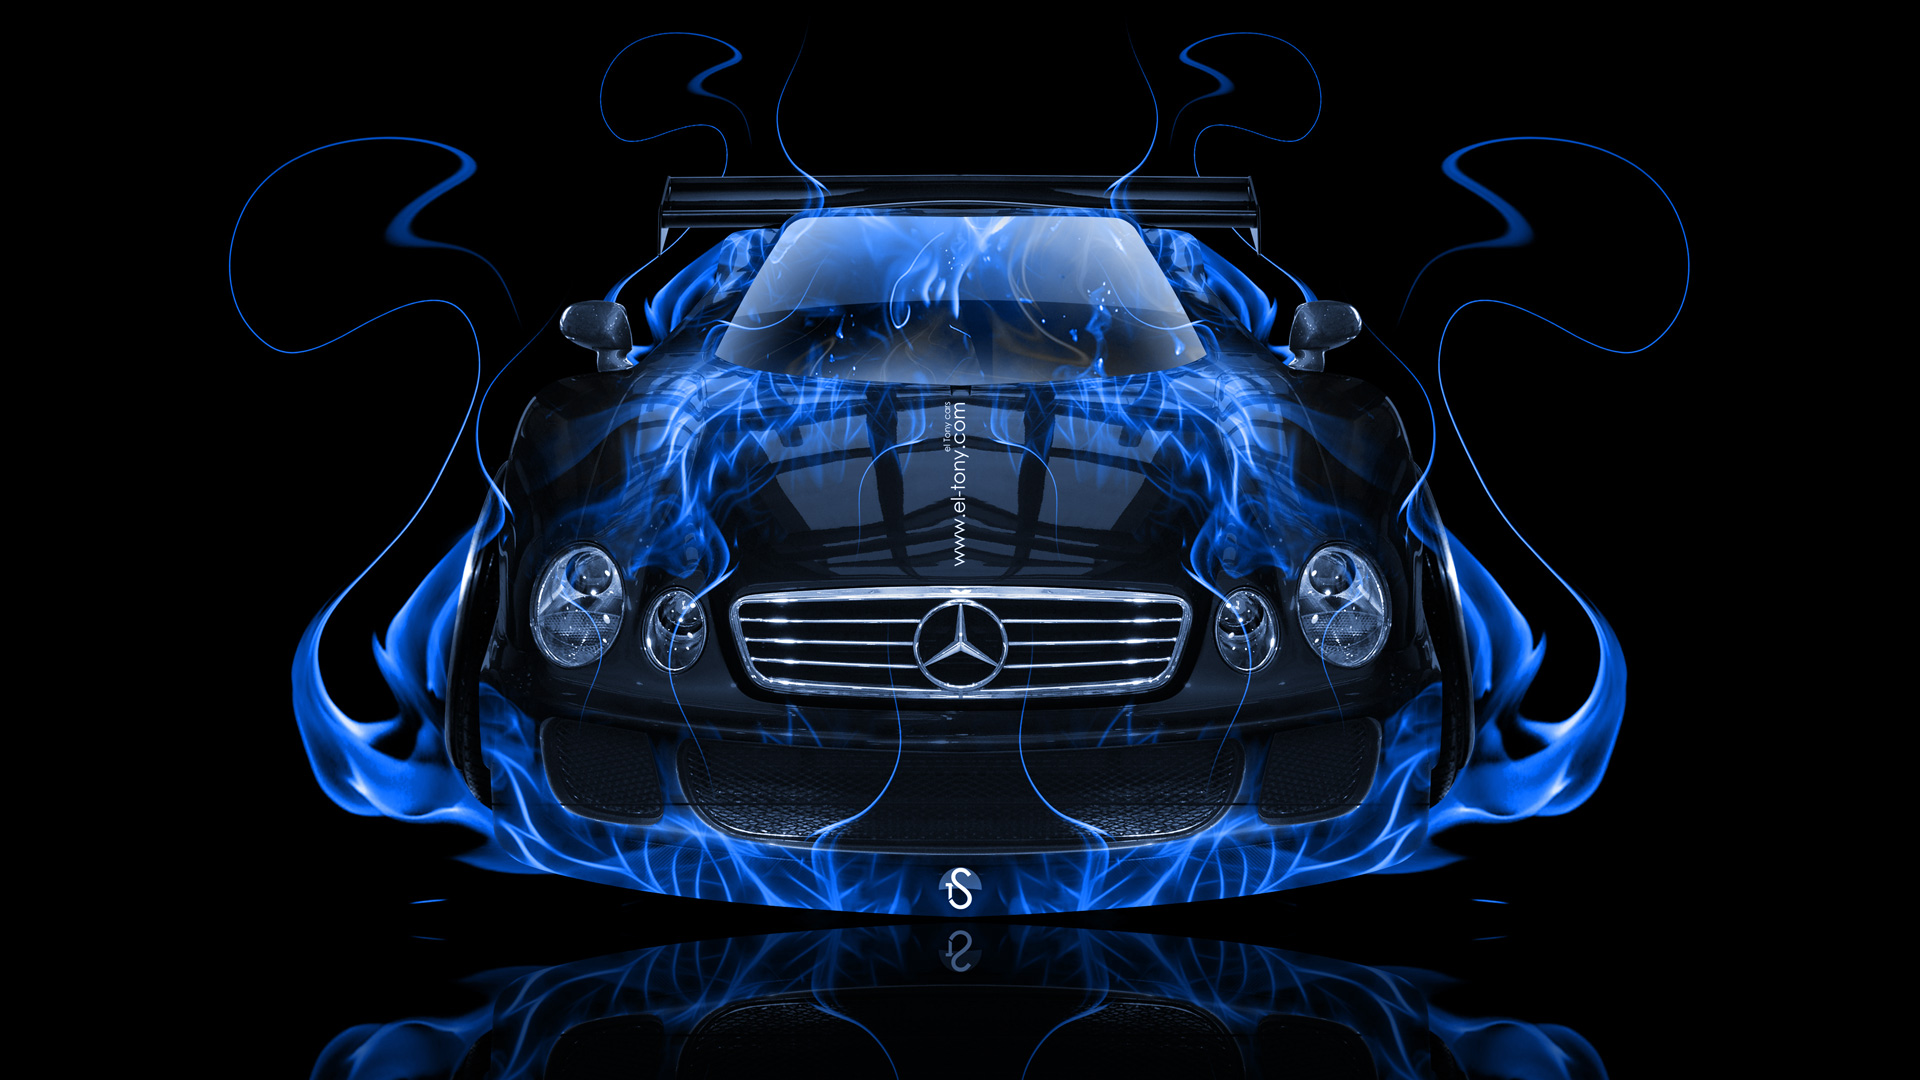 Marvelous ... Mercedes Benz CLK GTR FrontUp Blue Fire Abstract  ...